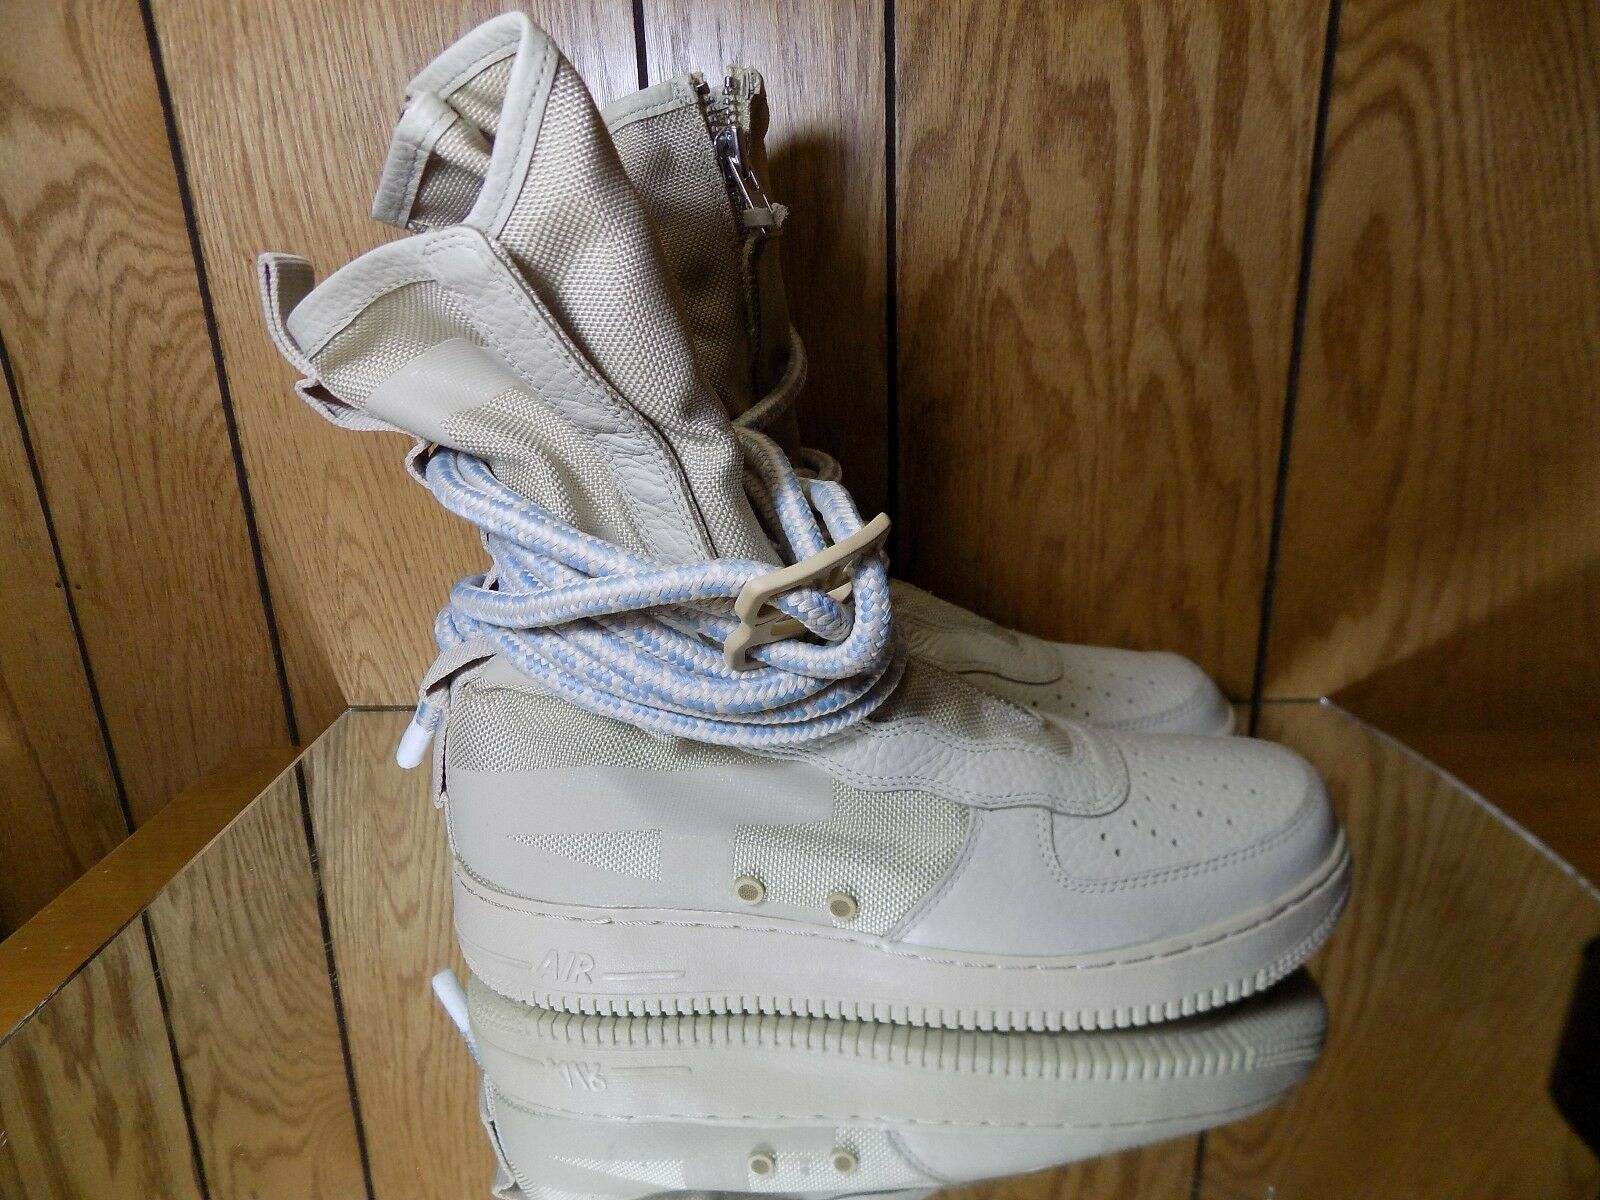 Nike SF AF1 Hi Rattan AA1128-200 9-12 air force boot special forces sp s. 9